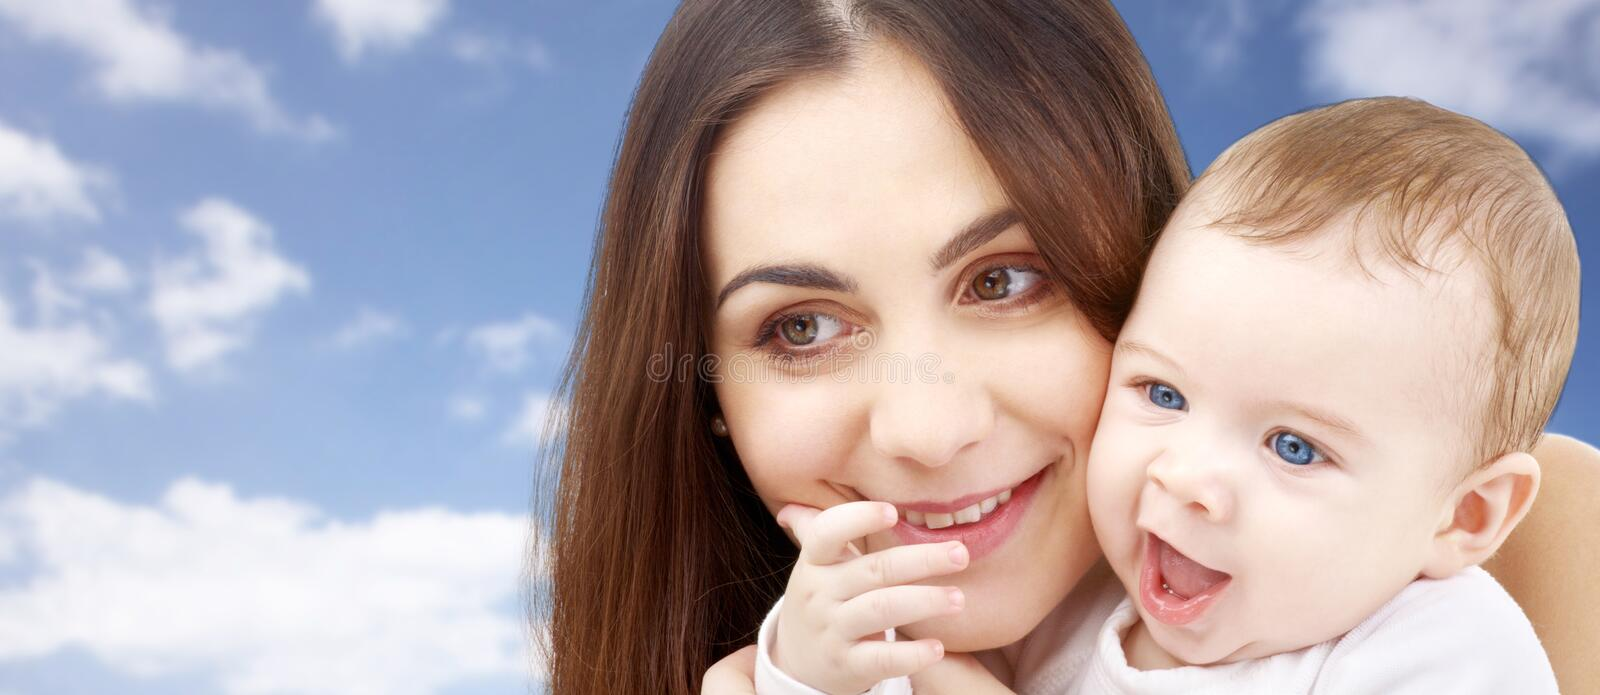 Mother with baby over sky background stock photo